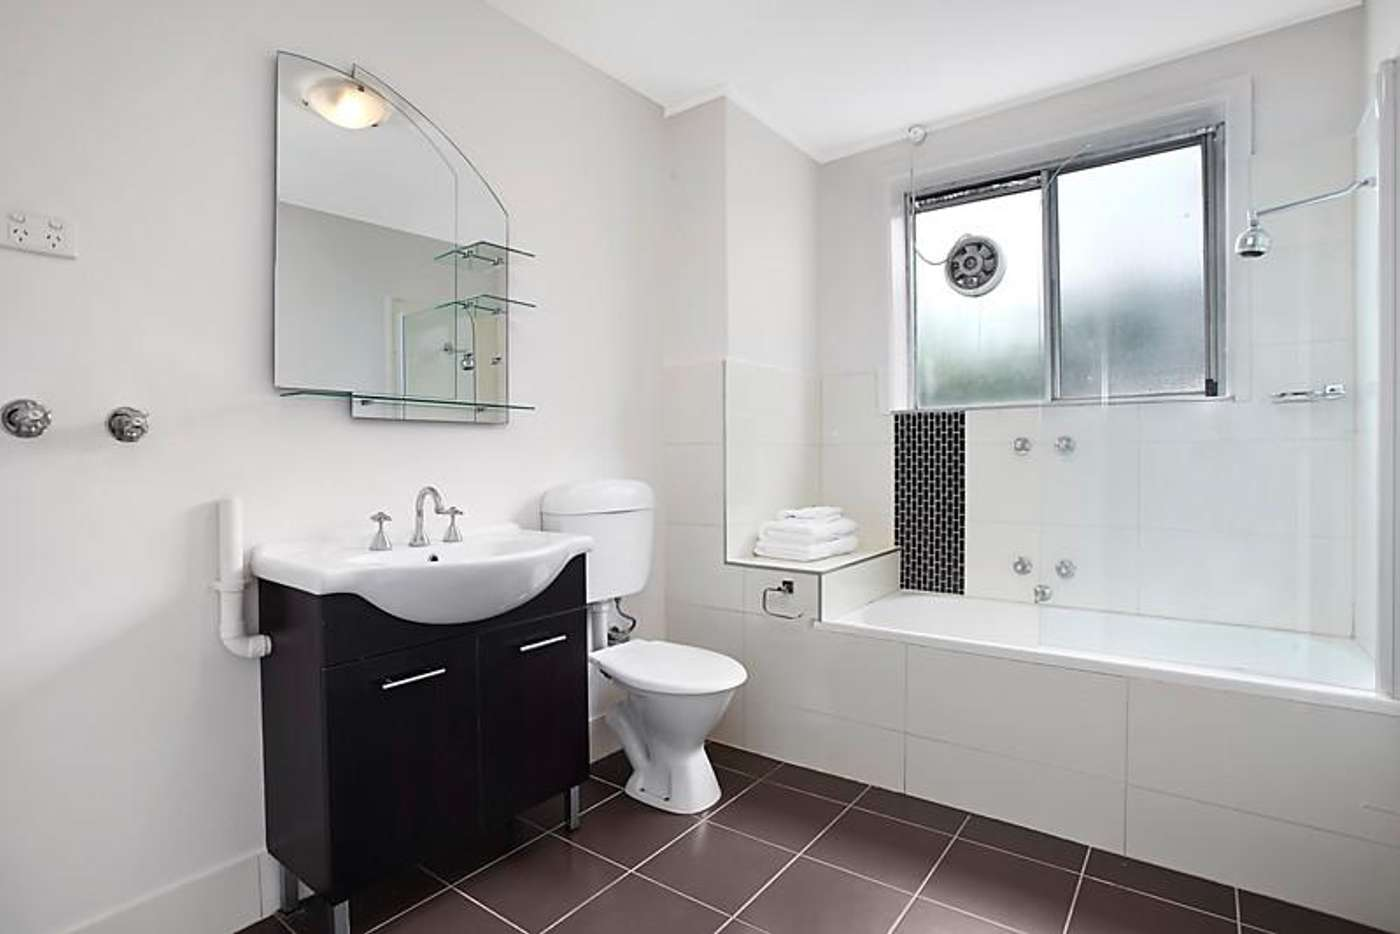 Sixth view of Homely apartment listing, 2/86 Collins Street, Thornbury VIC 3071